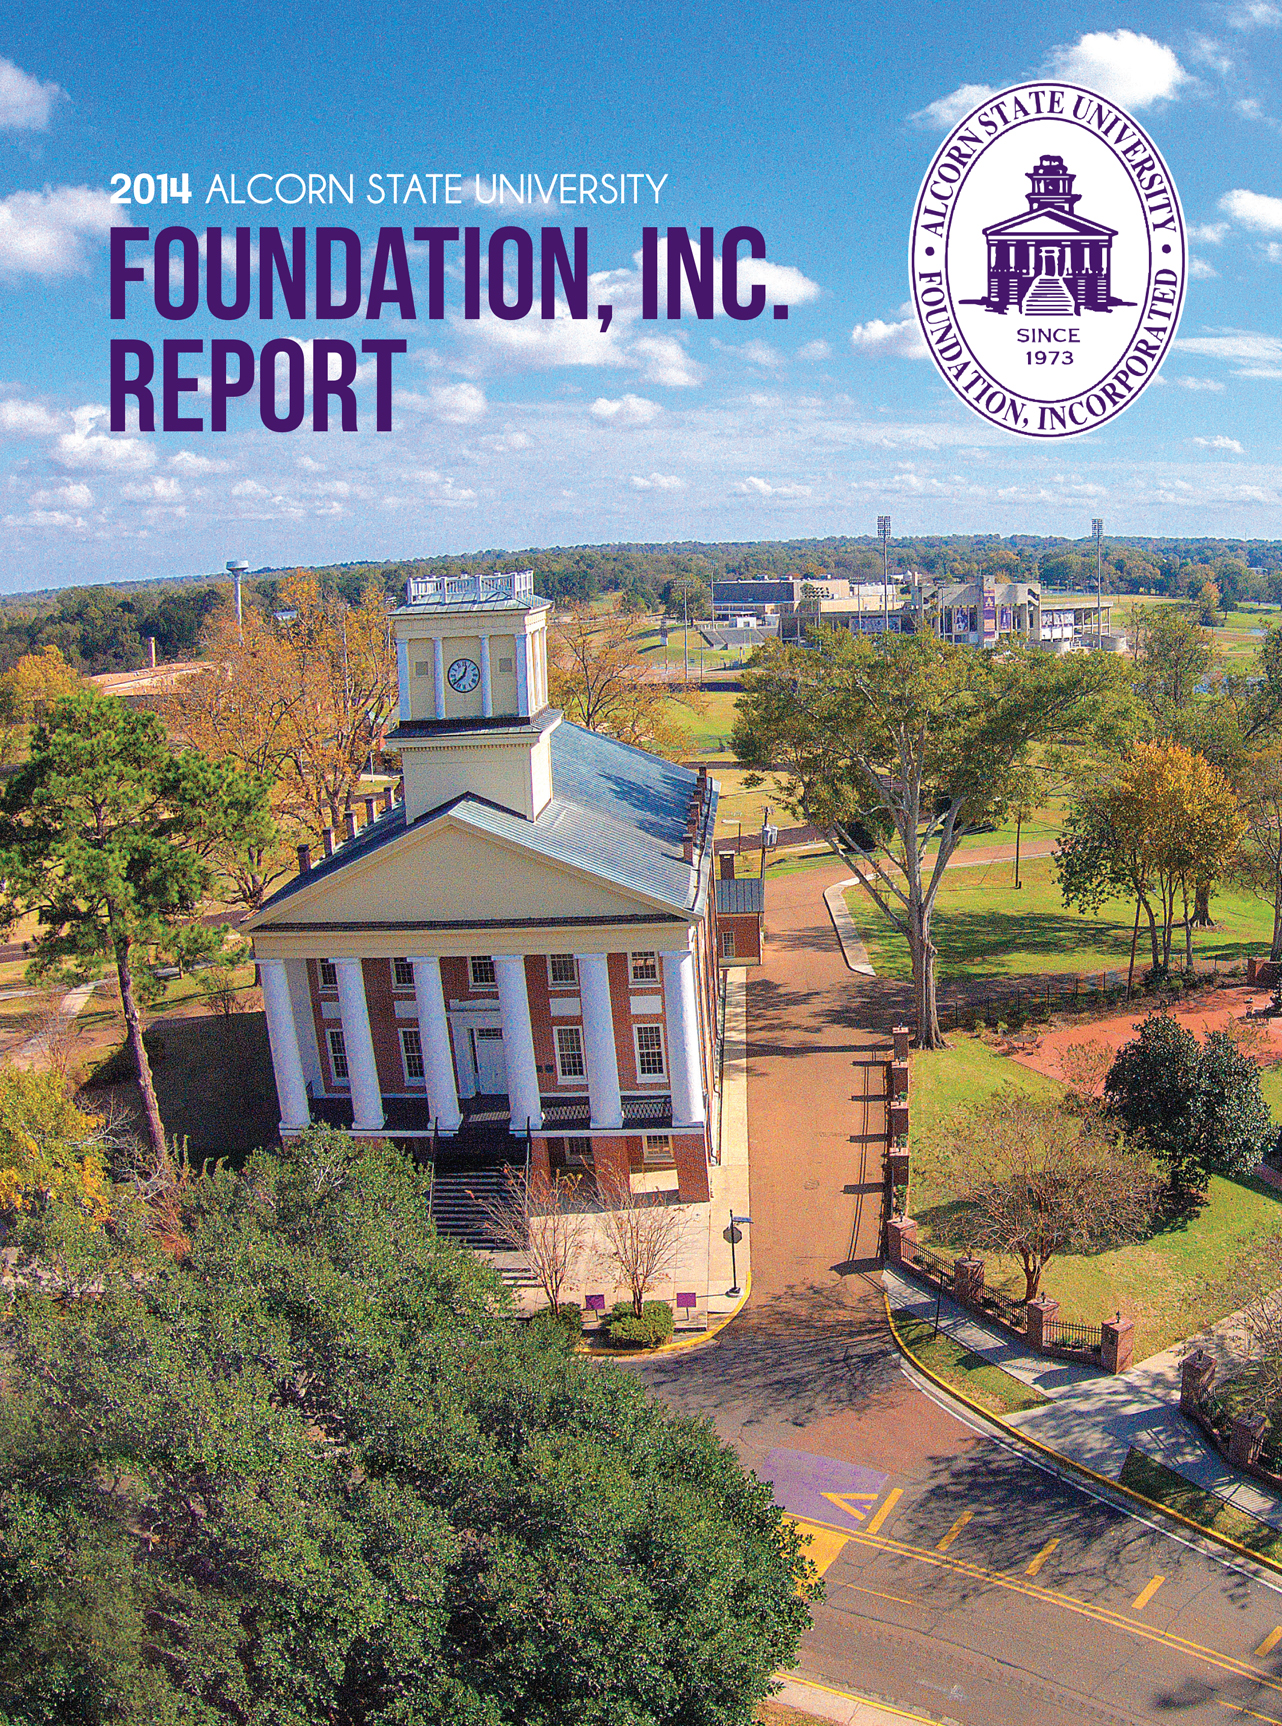 2014 Foundation Giving Report